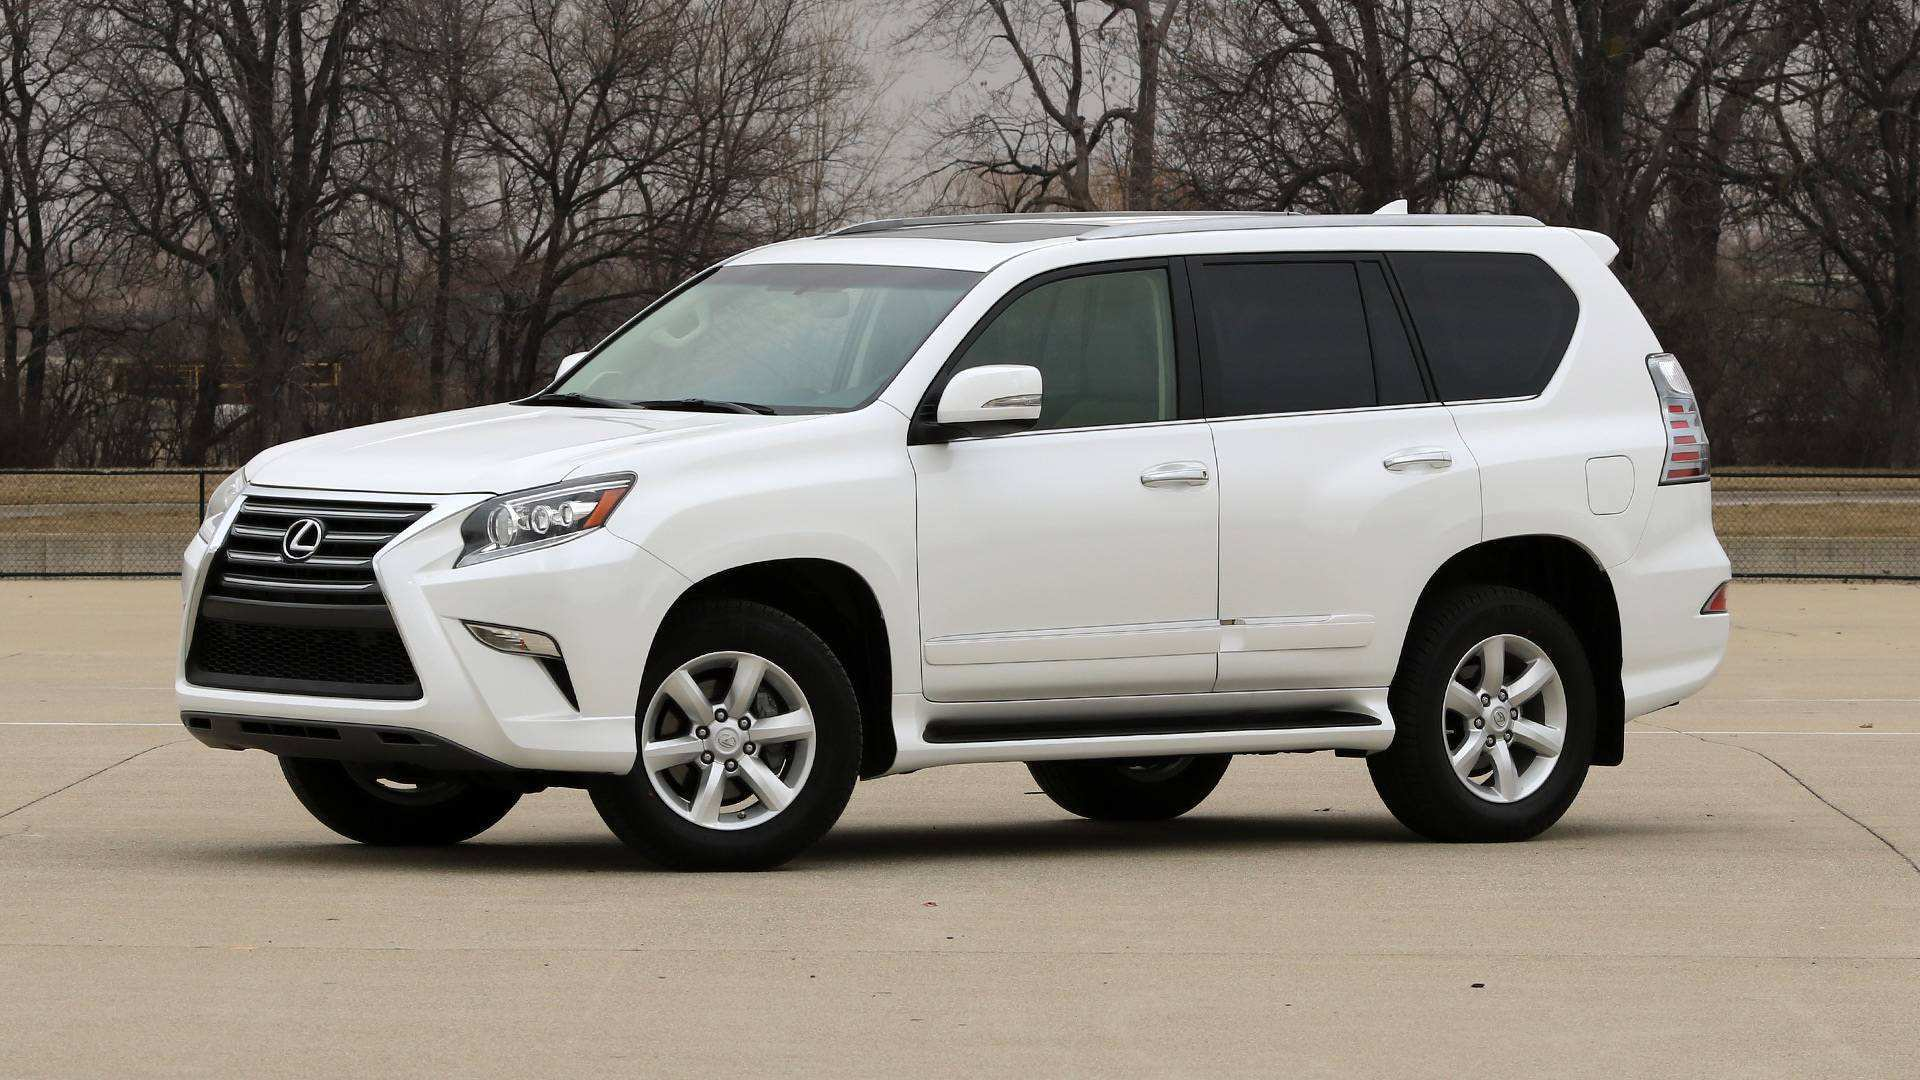 34 New Lexus Gx 460 Pictures Engine by Lexus Gx 460 Pictures